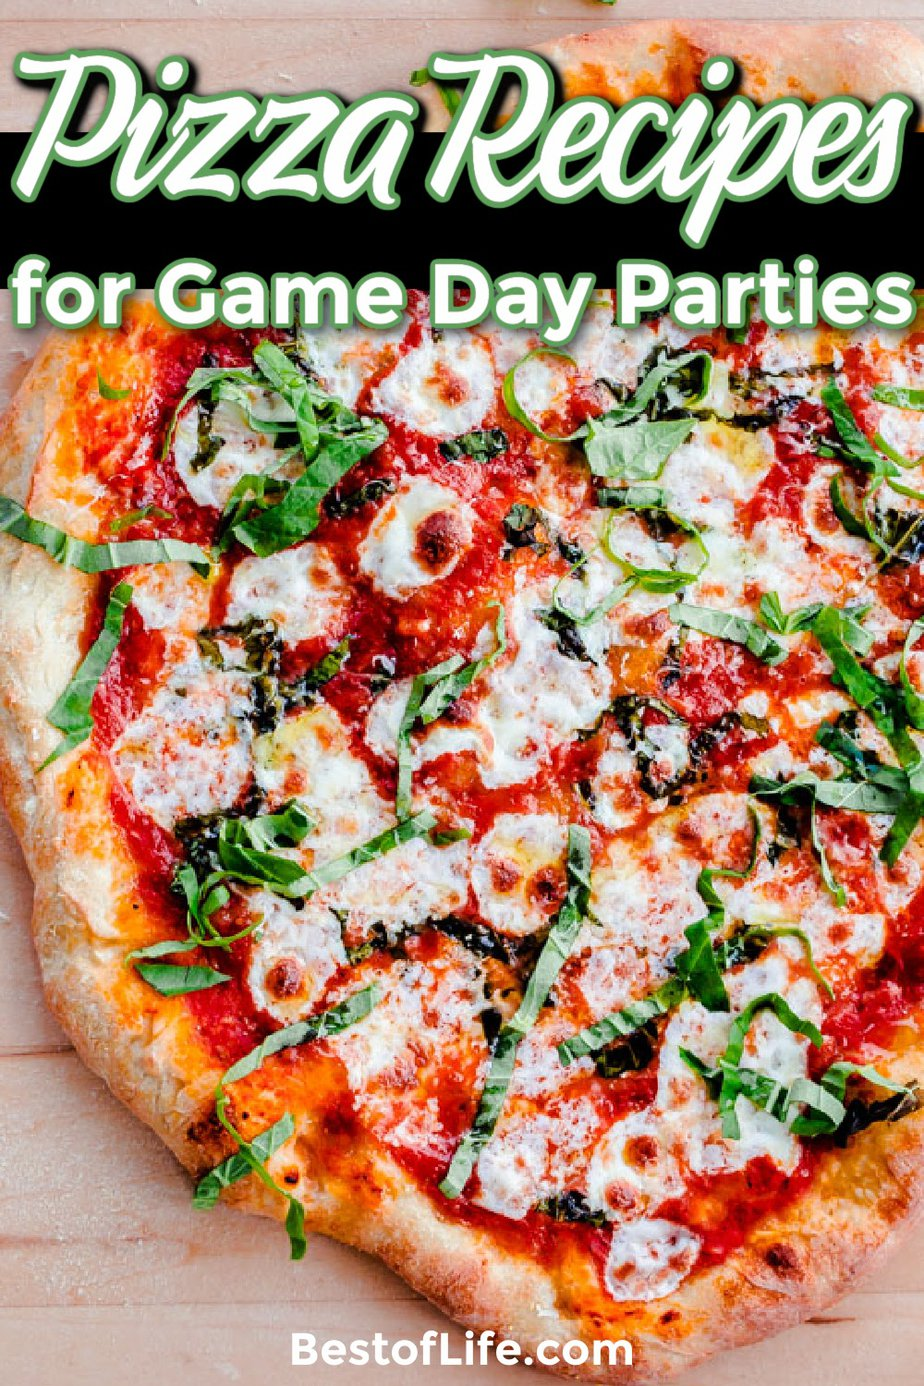 Pizza recipes from classics to dessert pizzas help make hosting a party even more affordable and fun. How to Make Pizza | Make Your Own Pizza Recipes | Pizza Recipes for Kids | Dessert Pizza Ideas | Unique Pizza Toppings | Homemade Pizza Tips | Gourmet Pizza Recipes Party Recipes for Kids | Recipes for a Crowd #pizzarecipes #partyrecipes via @thebestoflife